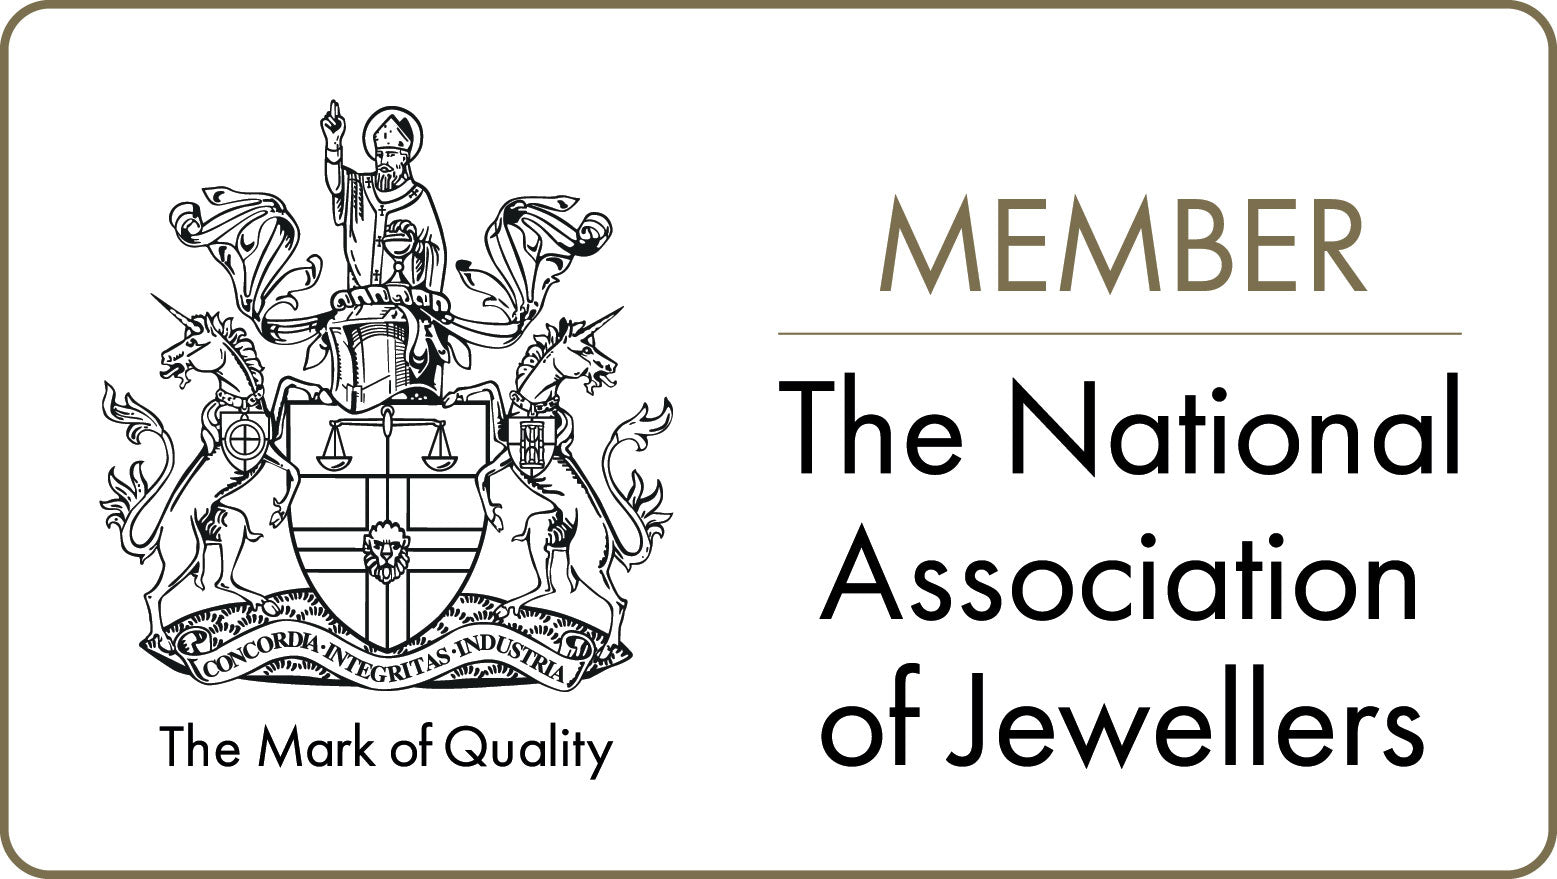 Antique Jewellers Ltd is a member of the National Association of Jewellers